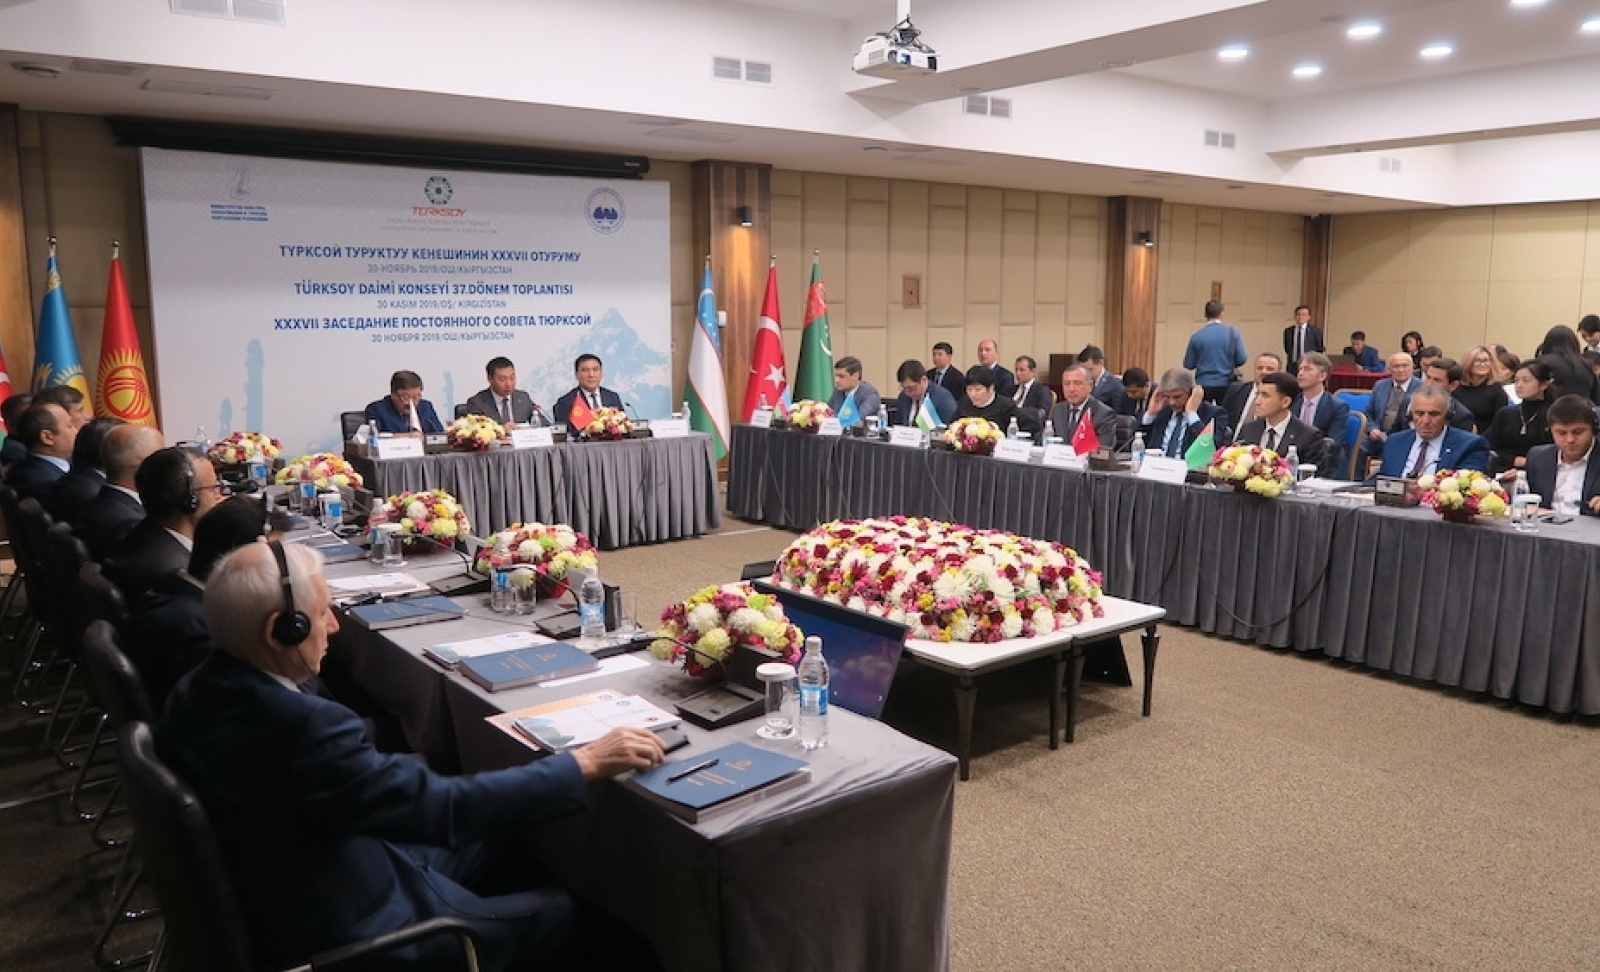 37th Term Meeting of the Permanent Council of TURKSOY  in Osh